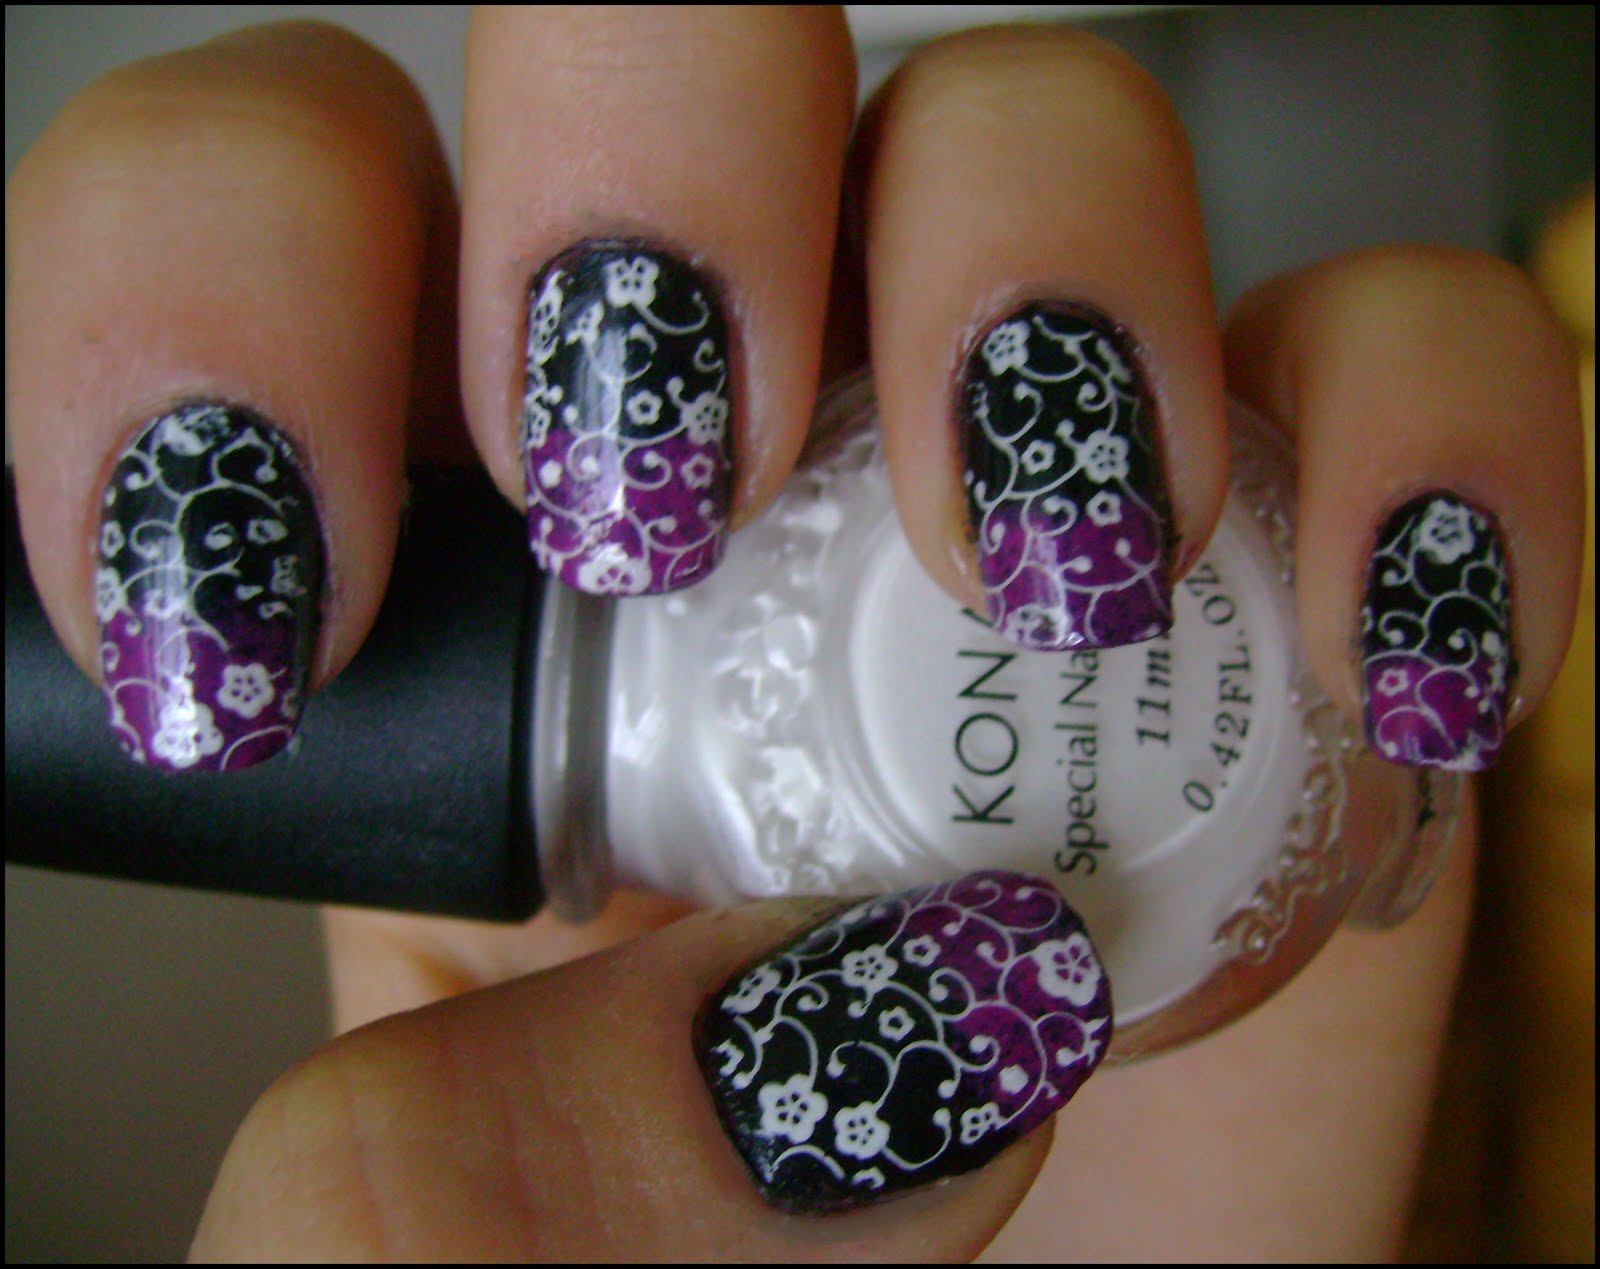 The Cool Black white cheetah nail designs Digital Imagery